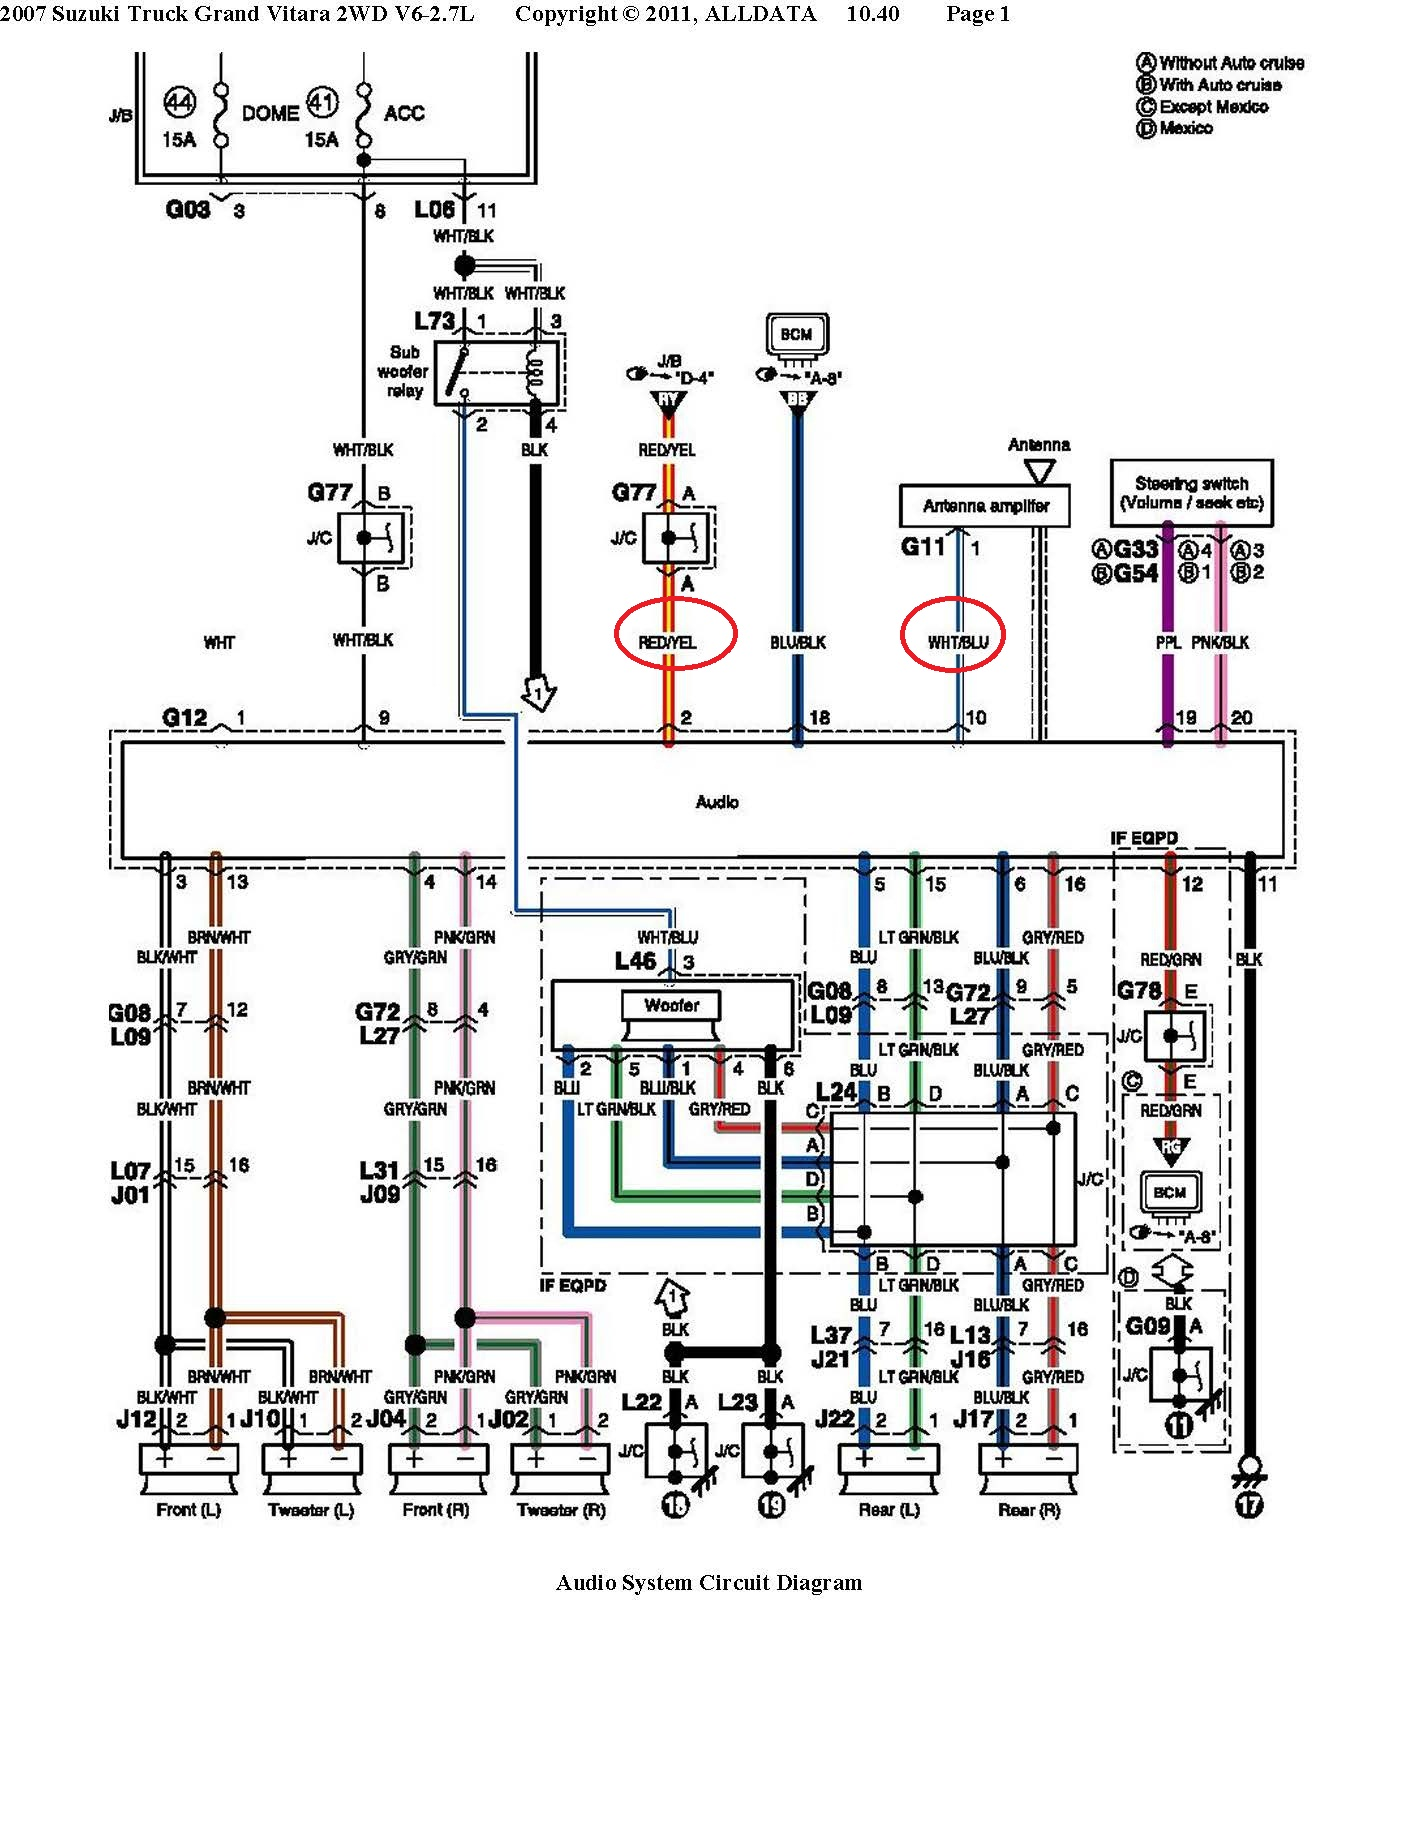 ford stereo wiring harness diagram with Suzuki Car Radio Wiring Connector on Toyota Tundra Factory   Bypass moreover Electric Water Heater Schematic Diagram also 7 Pin Connector Wiring Diagram moreover Wiring Diagram 2006 Honda Odyssey Stereo 1996 Full Size Civic together with Watch.